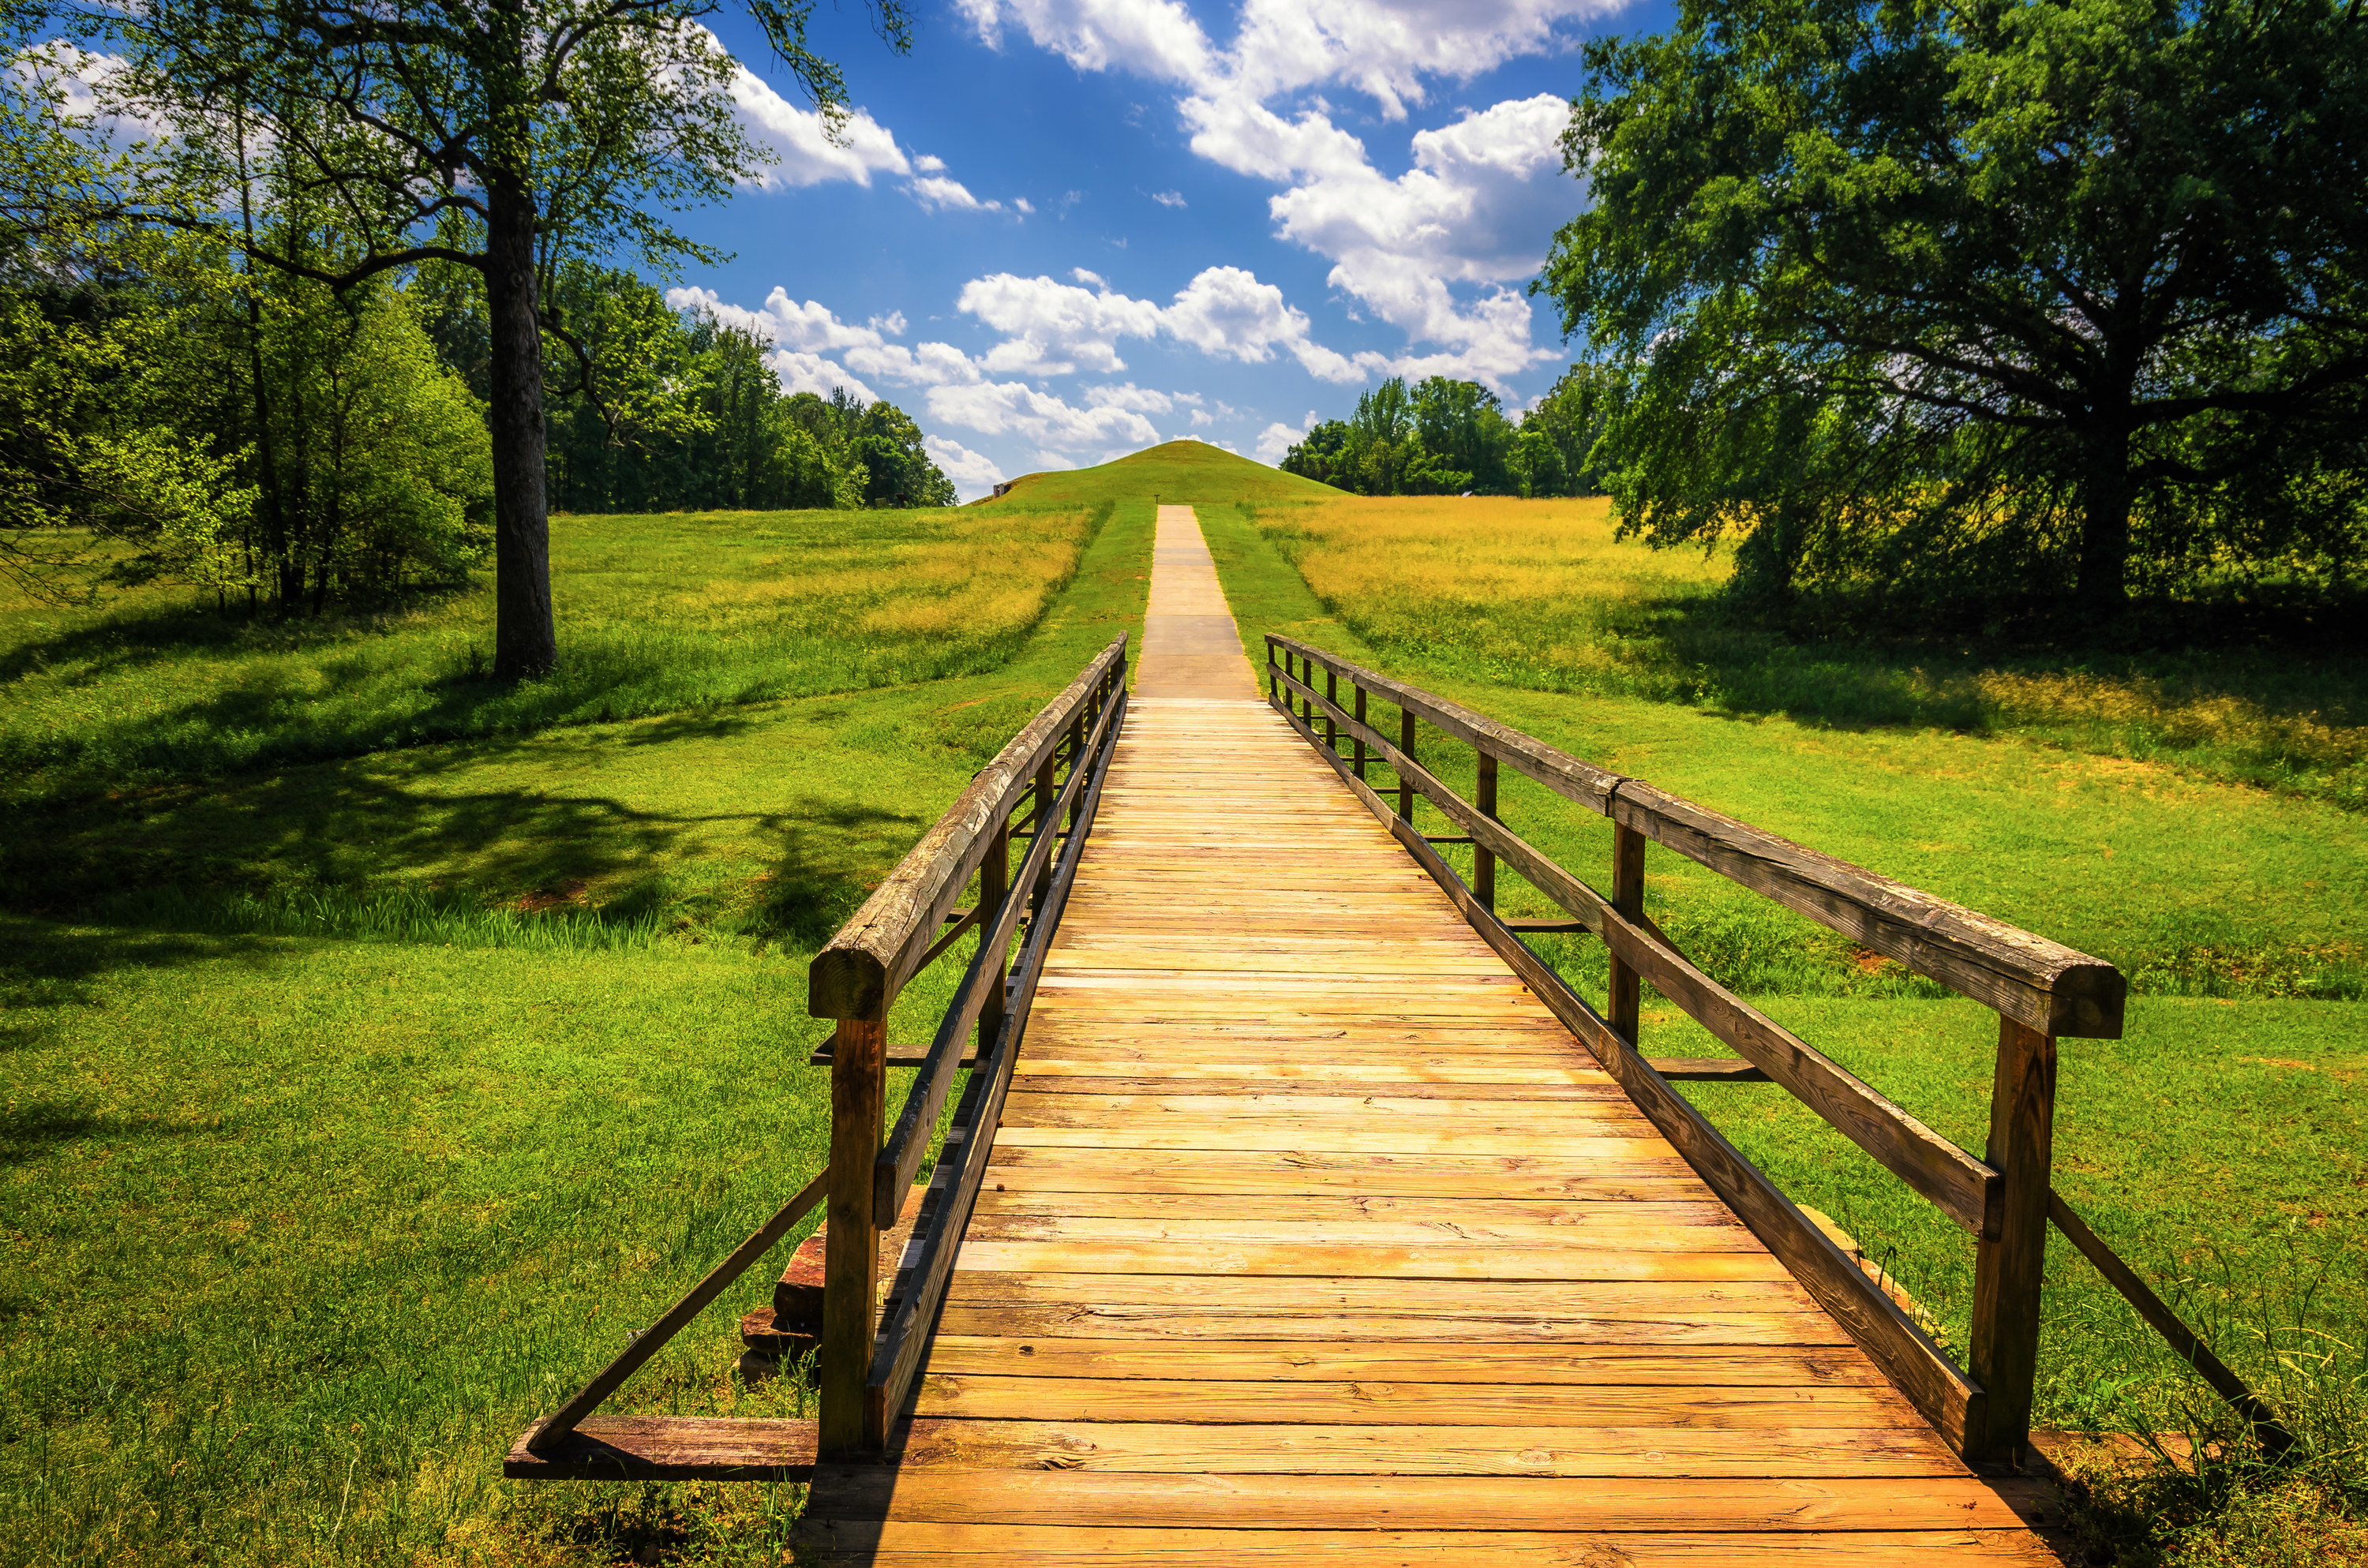 A boardwalk cuts through a grassy area toward the Ocmulgee Mounds.